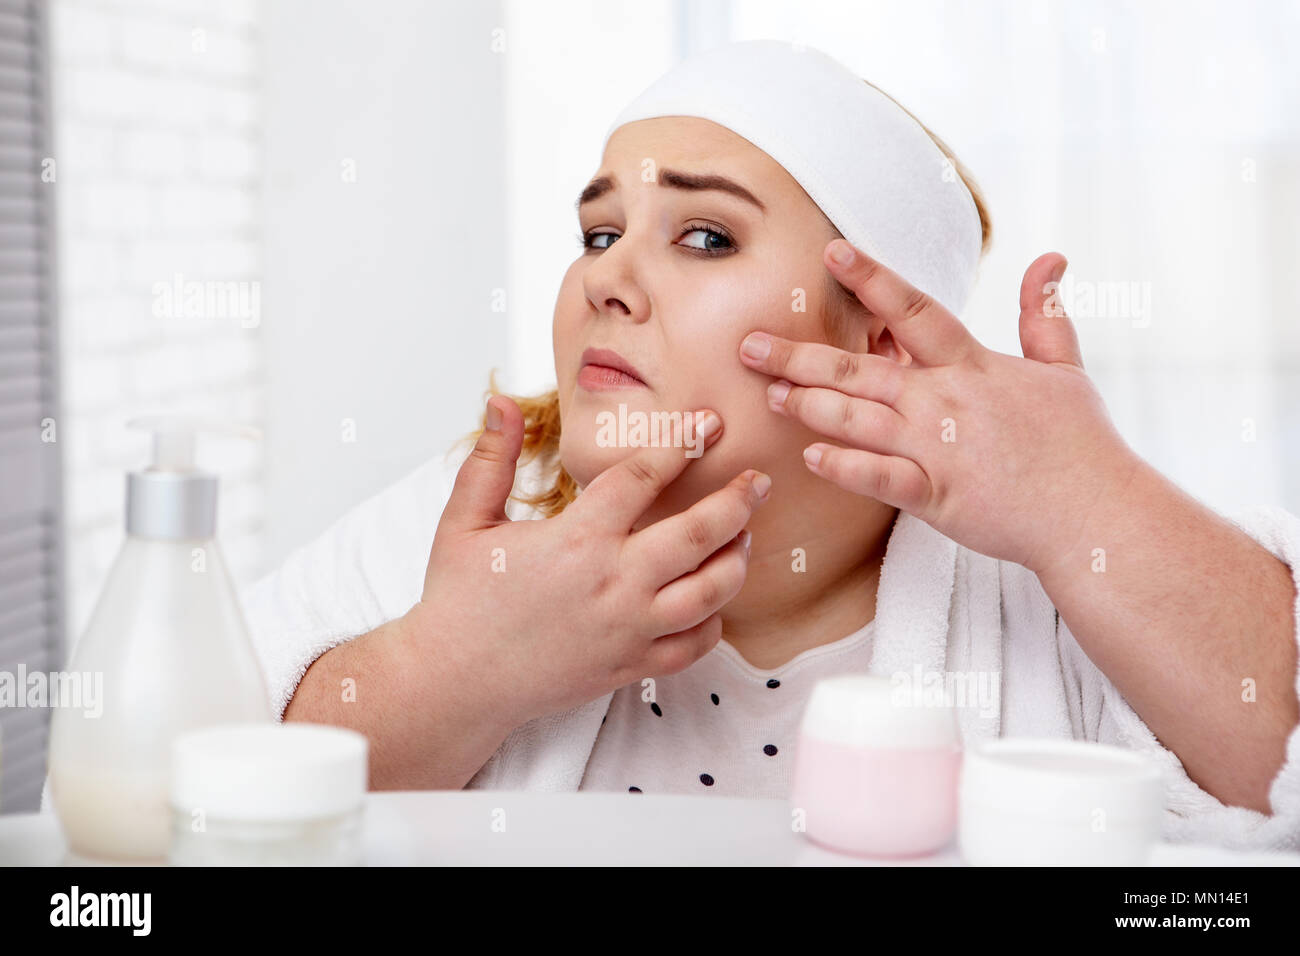 Grosse femme popping boutons concernés Photo Stock